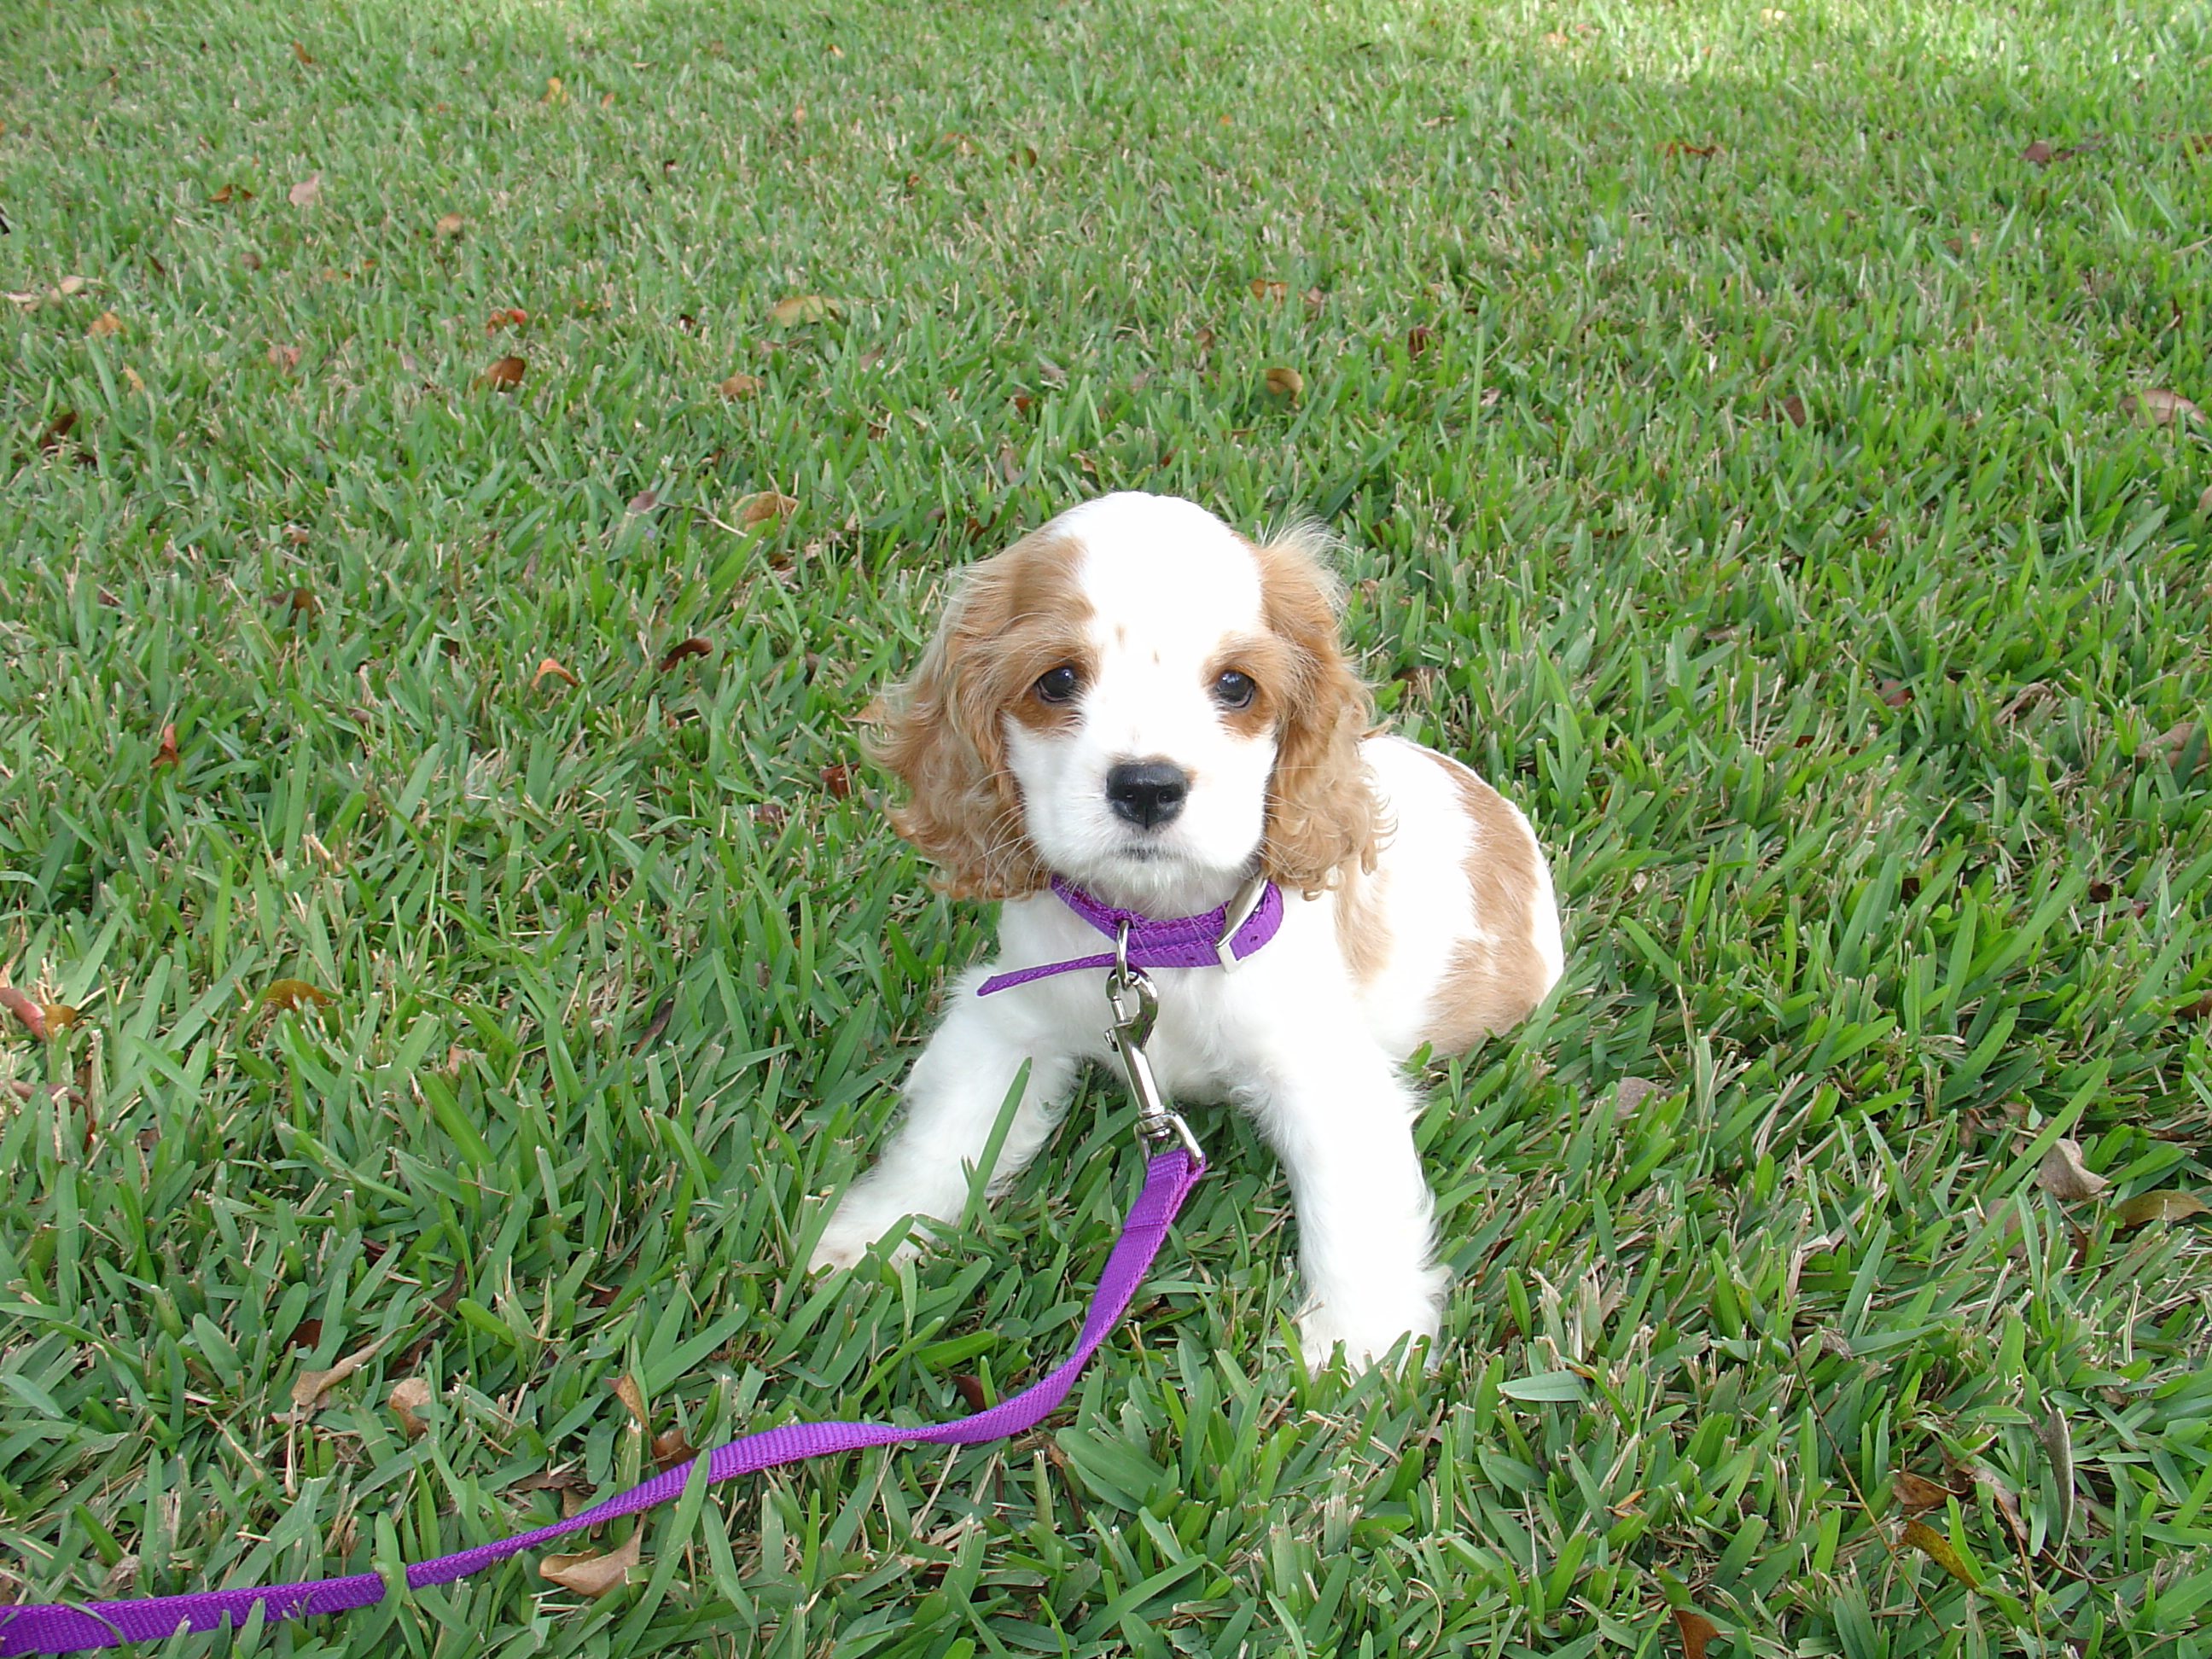 File:AMERICAN COCKER SPANIEL PUPPY 7 WEEKS.jpg - Wikipedia, the free ...